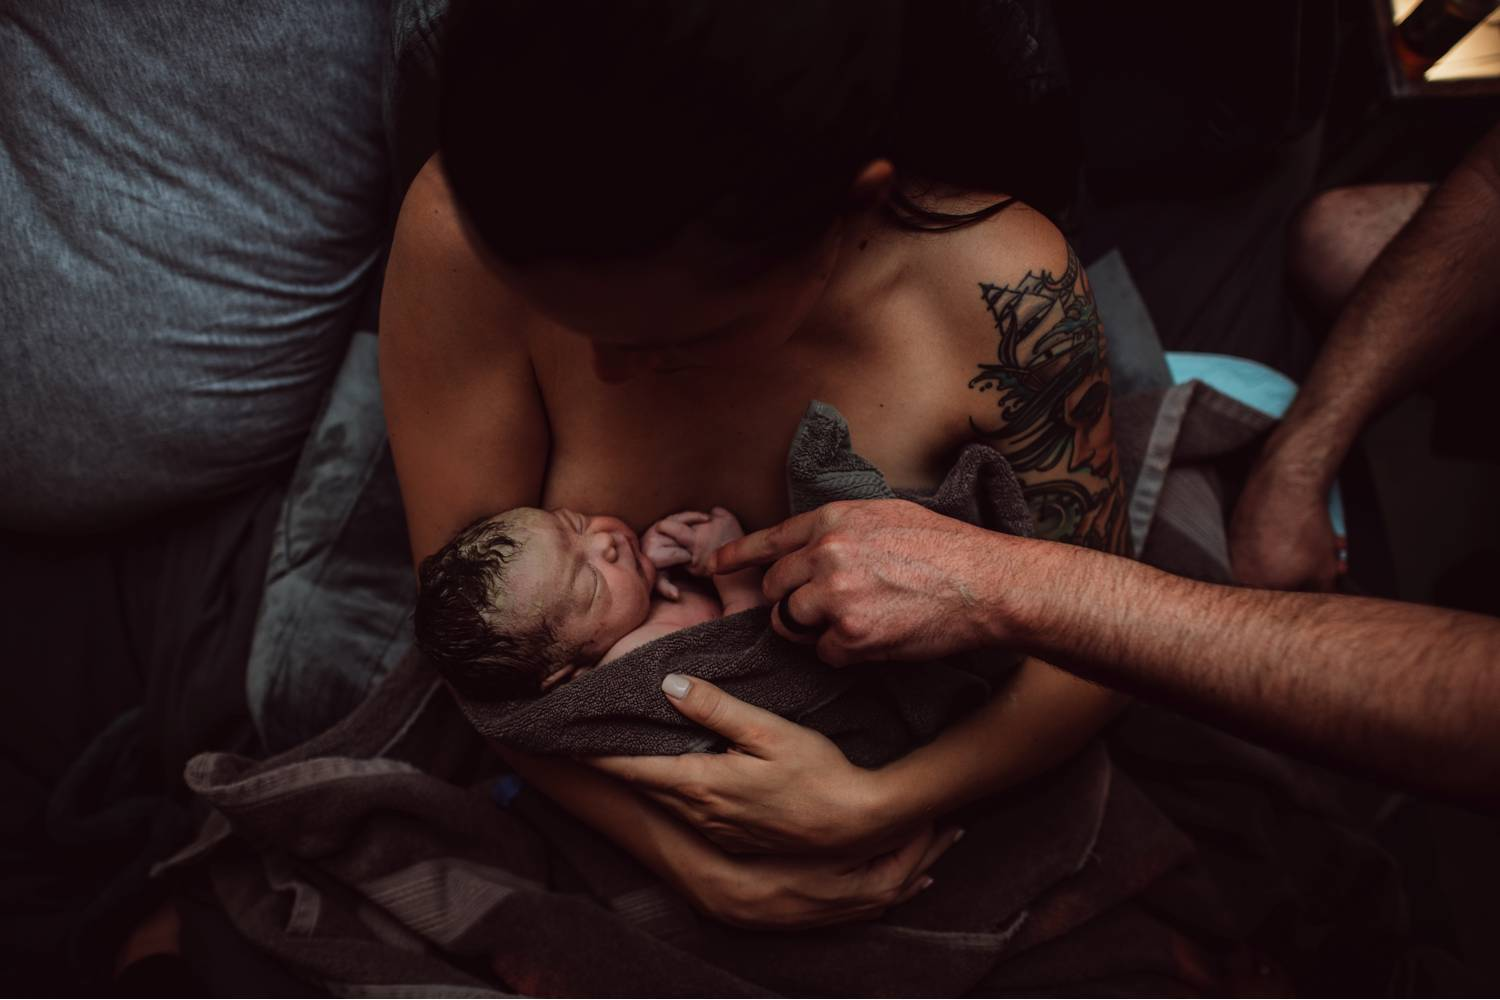 New parents cradle their infant moments after delivering the baby in a home birth